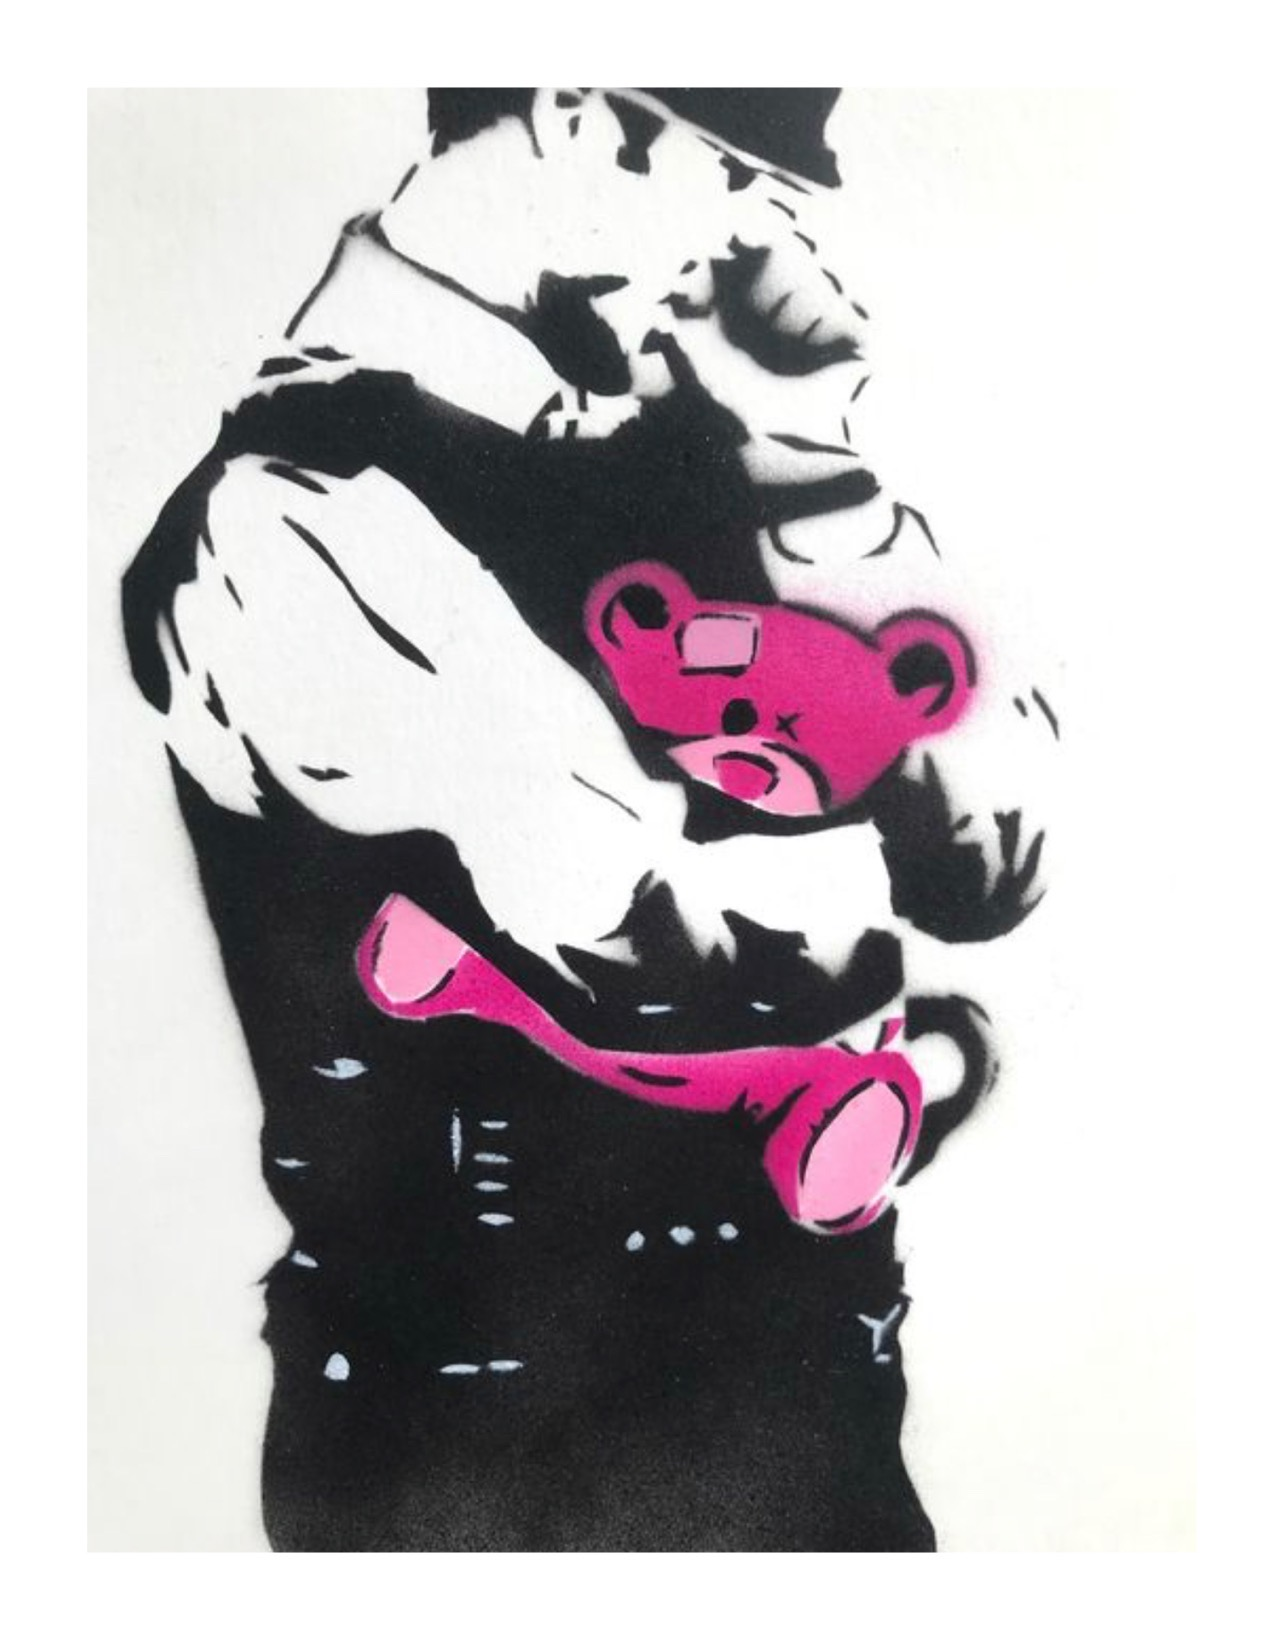 CANNED-MOFART'Z 'BABY COP' - 2020 - Image 3 of 4